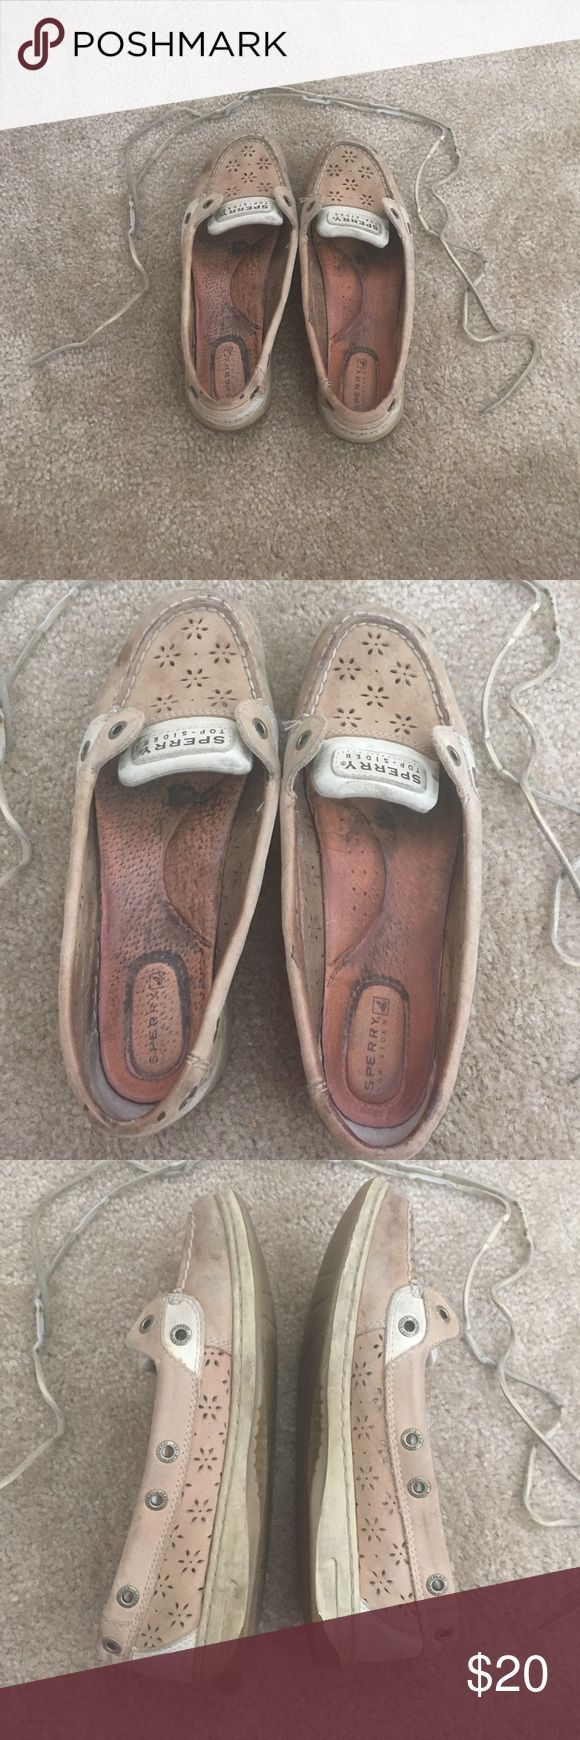 TGIF SALE! 🥂EYELET SPERRY'S Worn for two seasons. Very used. Have a lot of life left in them. All stains etc. visibly pictured. Both laces are taken out but are included. Pictures are as is, will clean and sanitize them for you before shipping. Sperry Top-Sider Shoes Sneakers